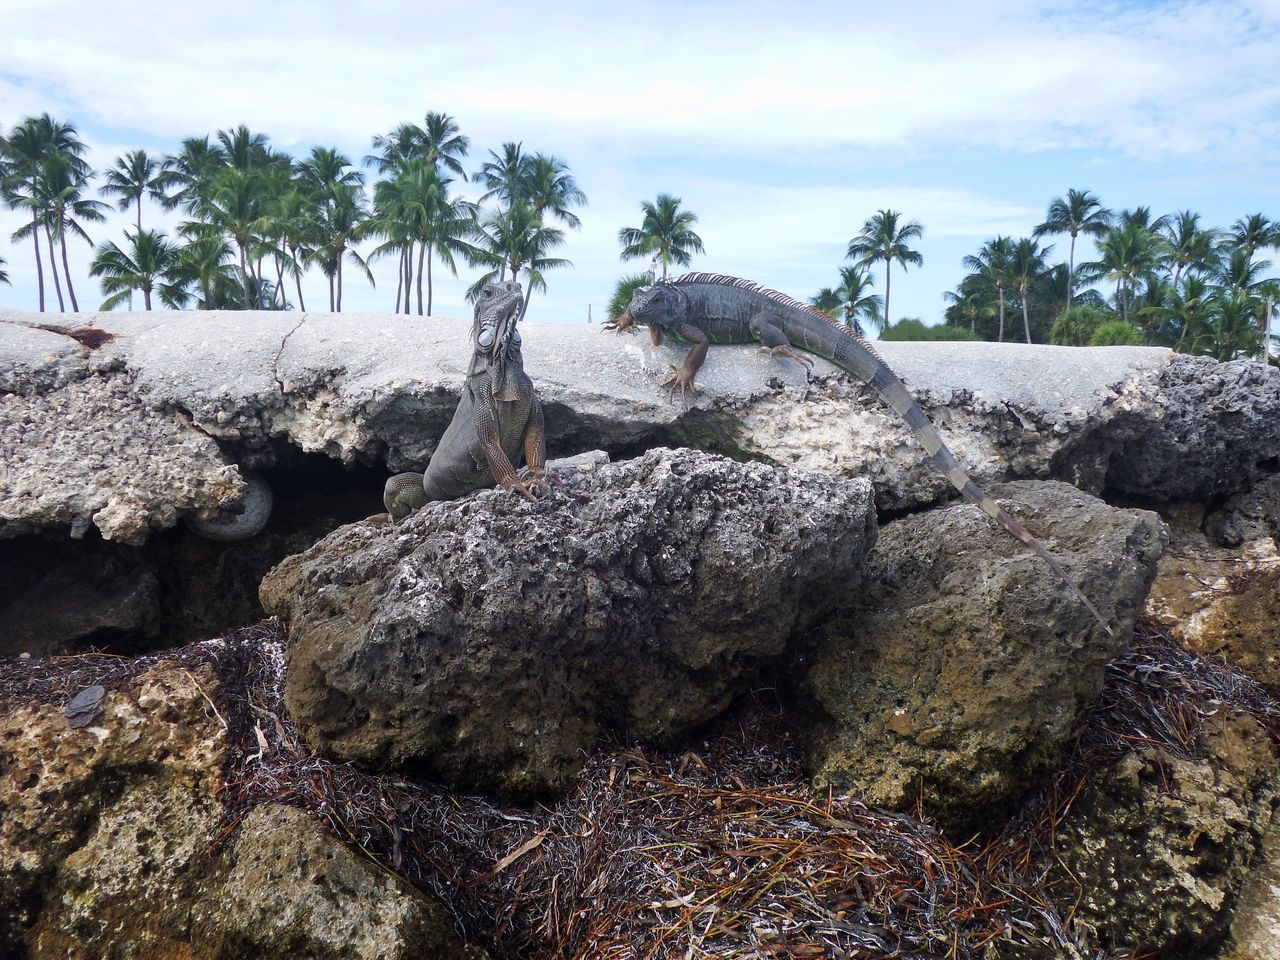 Rock - Object Nature Sky Day Tranquility Geology No People Outdoors Tree Beauty In Nature Water Iguana Green Iguana Florida Keys Islamorada